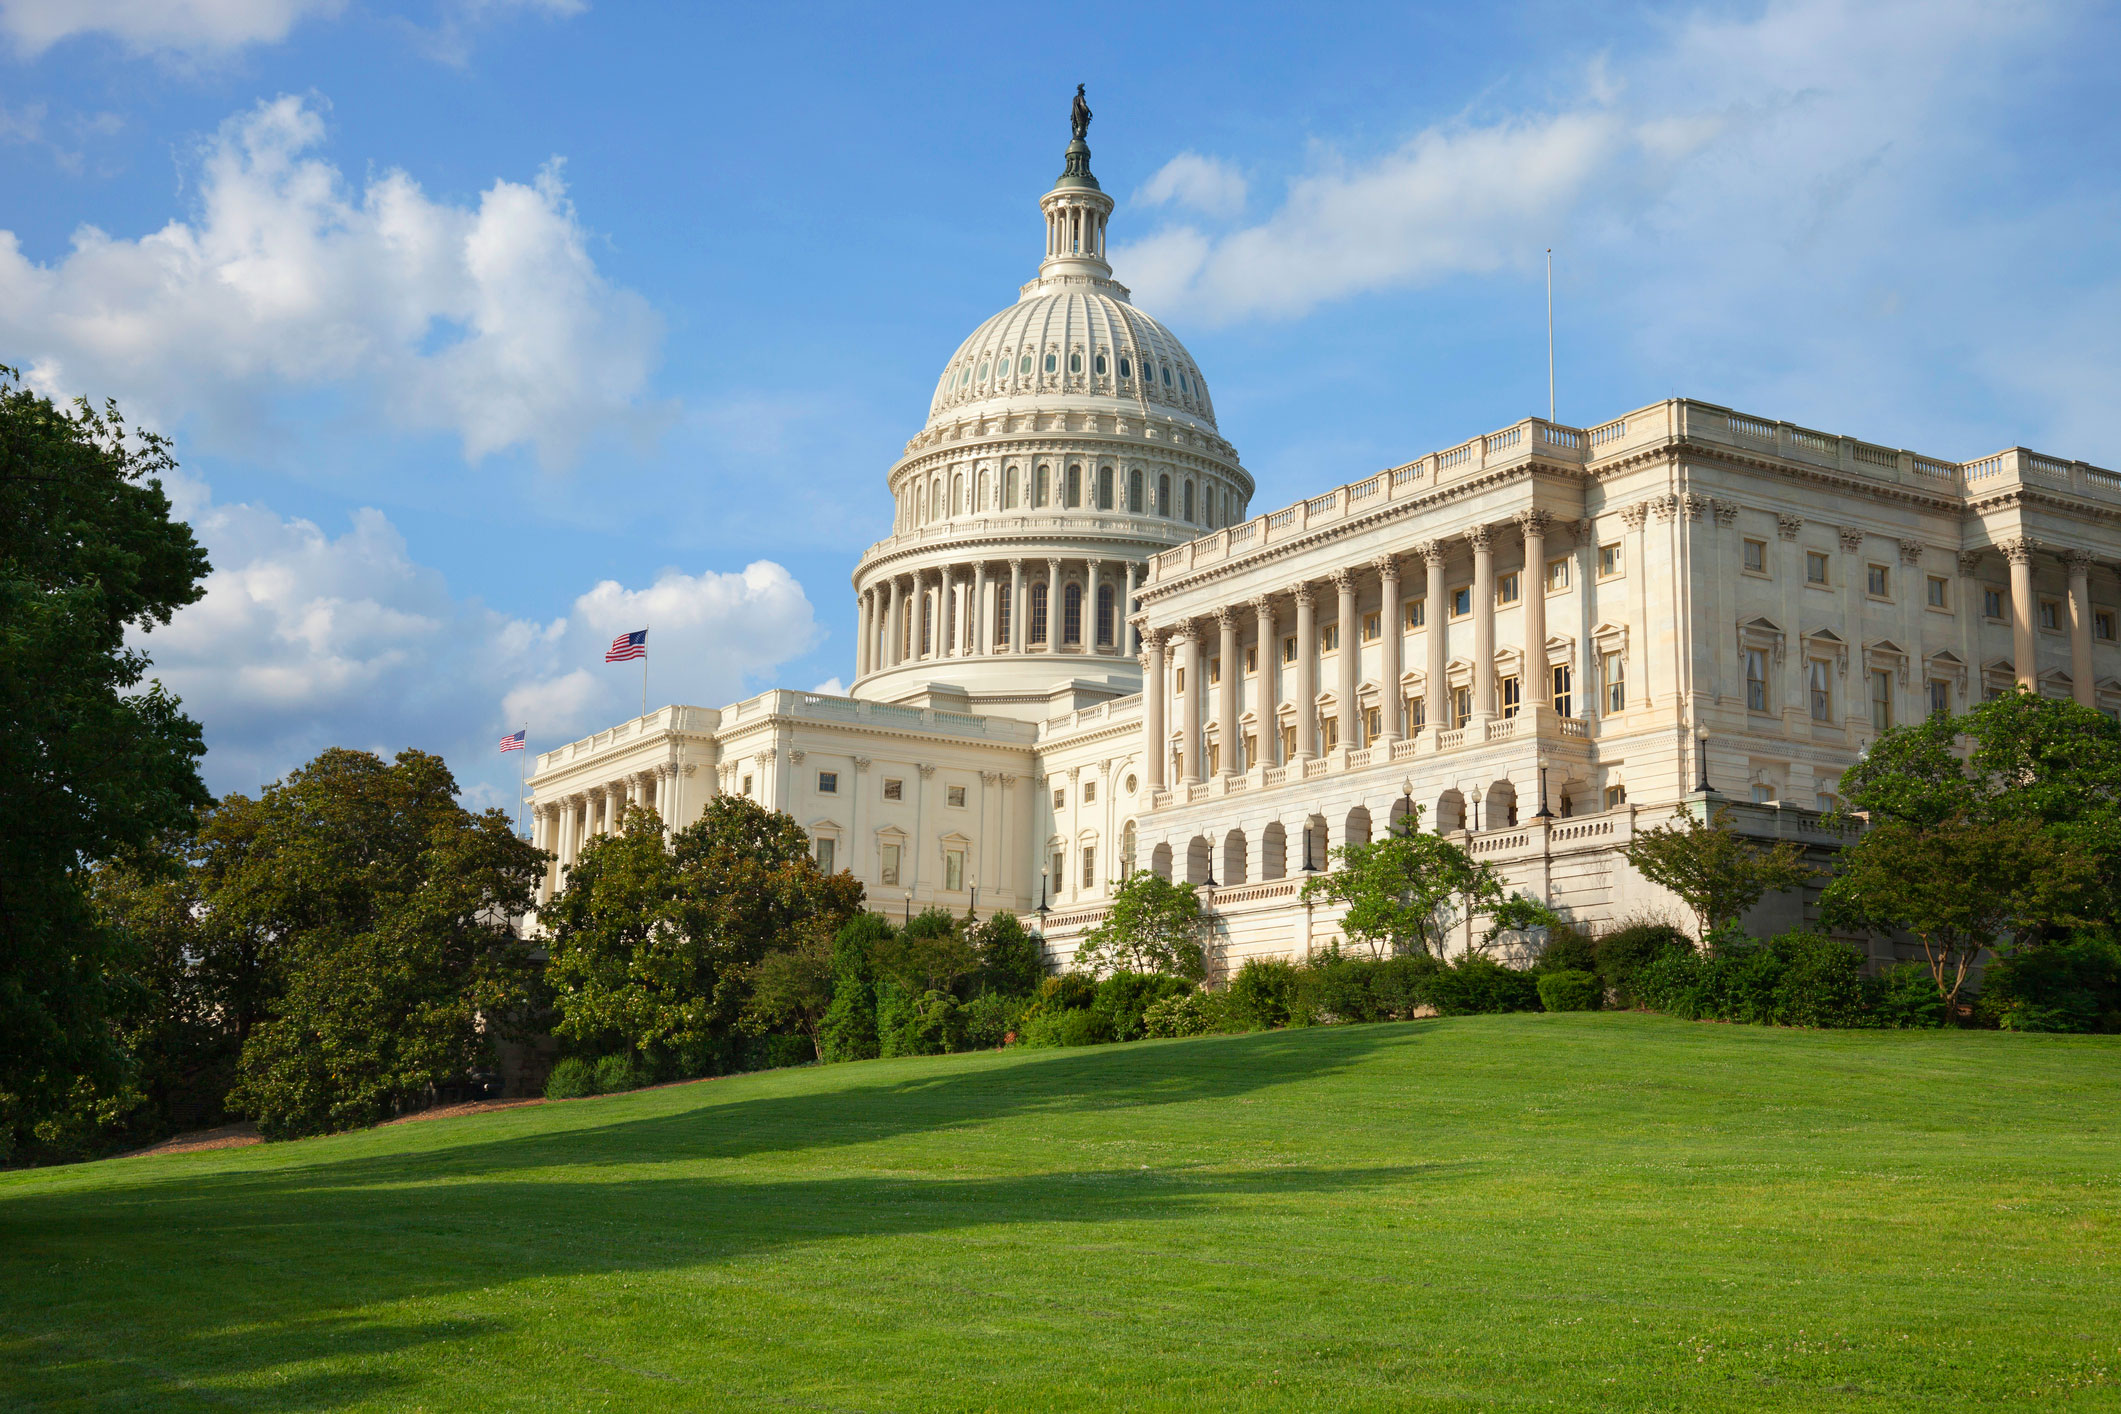 United-States-Capitol-building-lawn